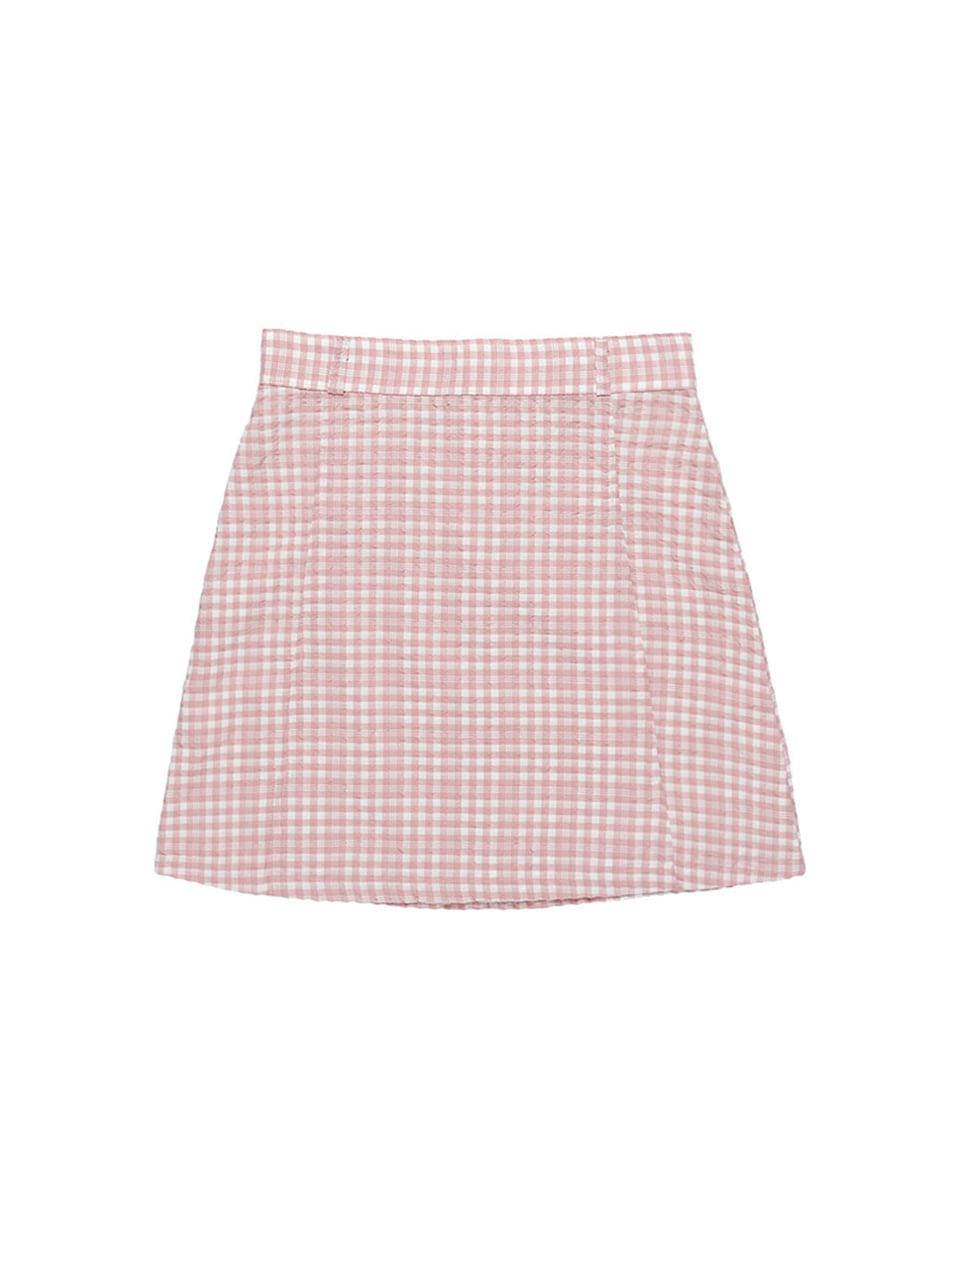 mgmg basic check skirt_pink